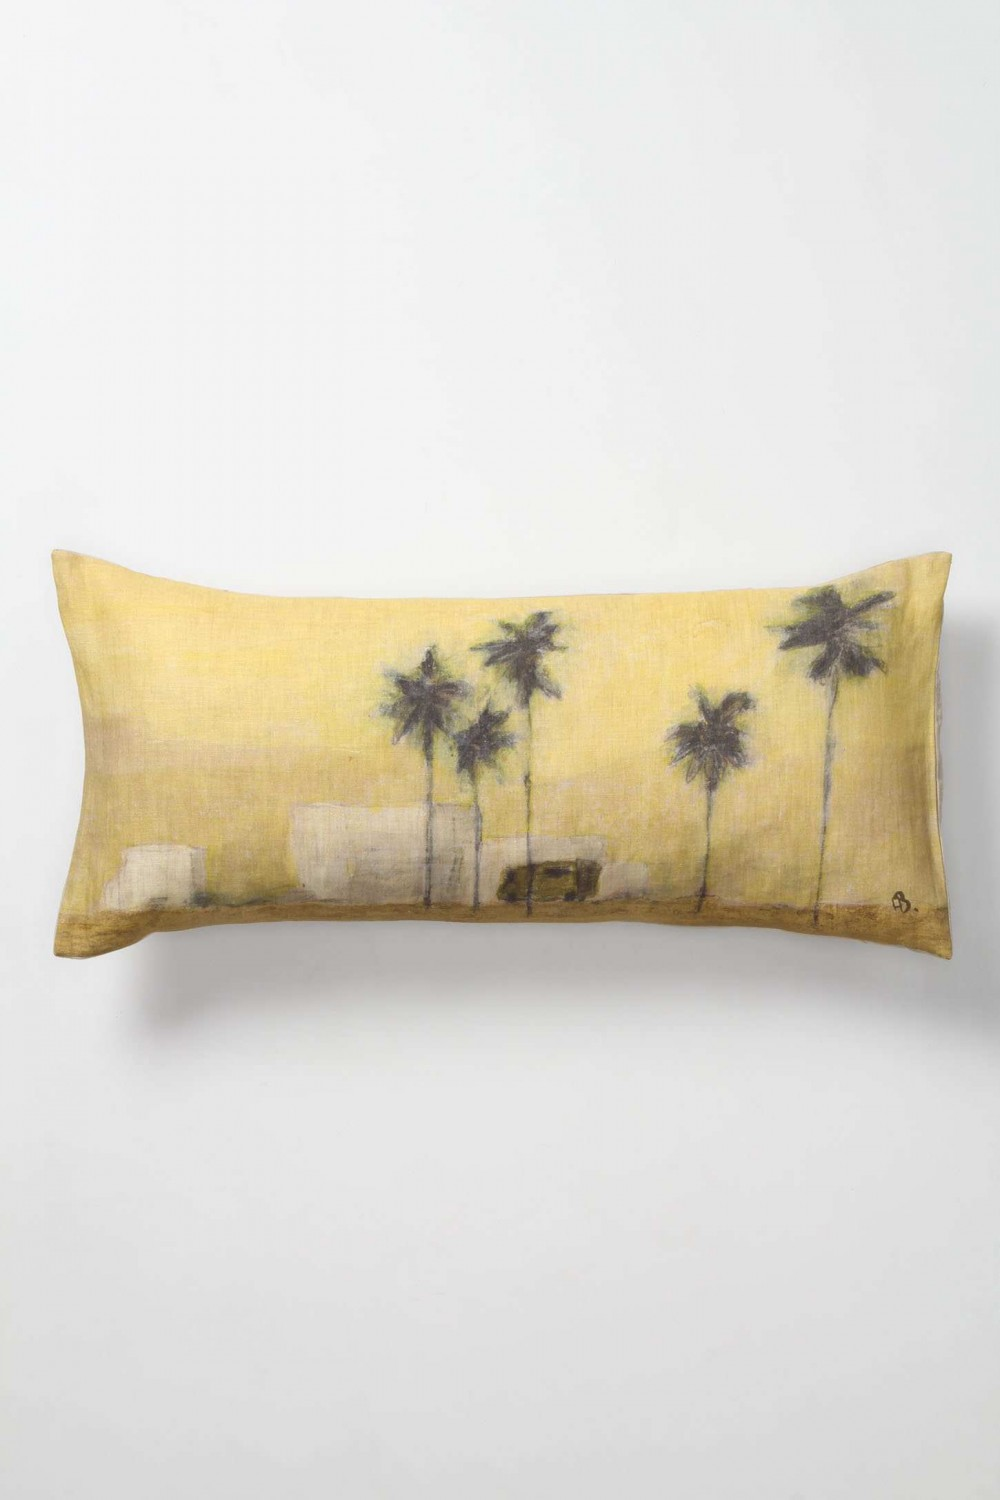 Haby Bonomo for Genevieve Levy edition  cushions FLODEAU.COM 2